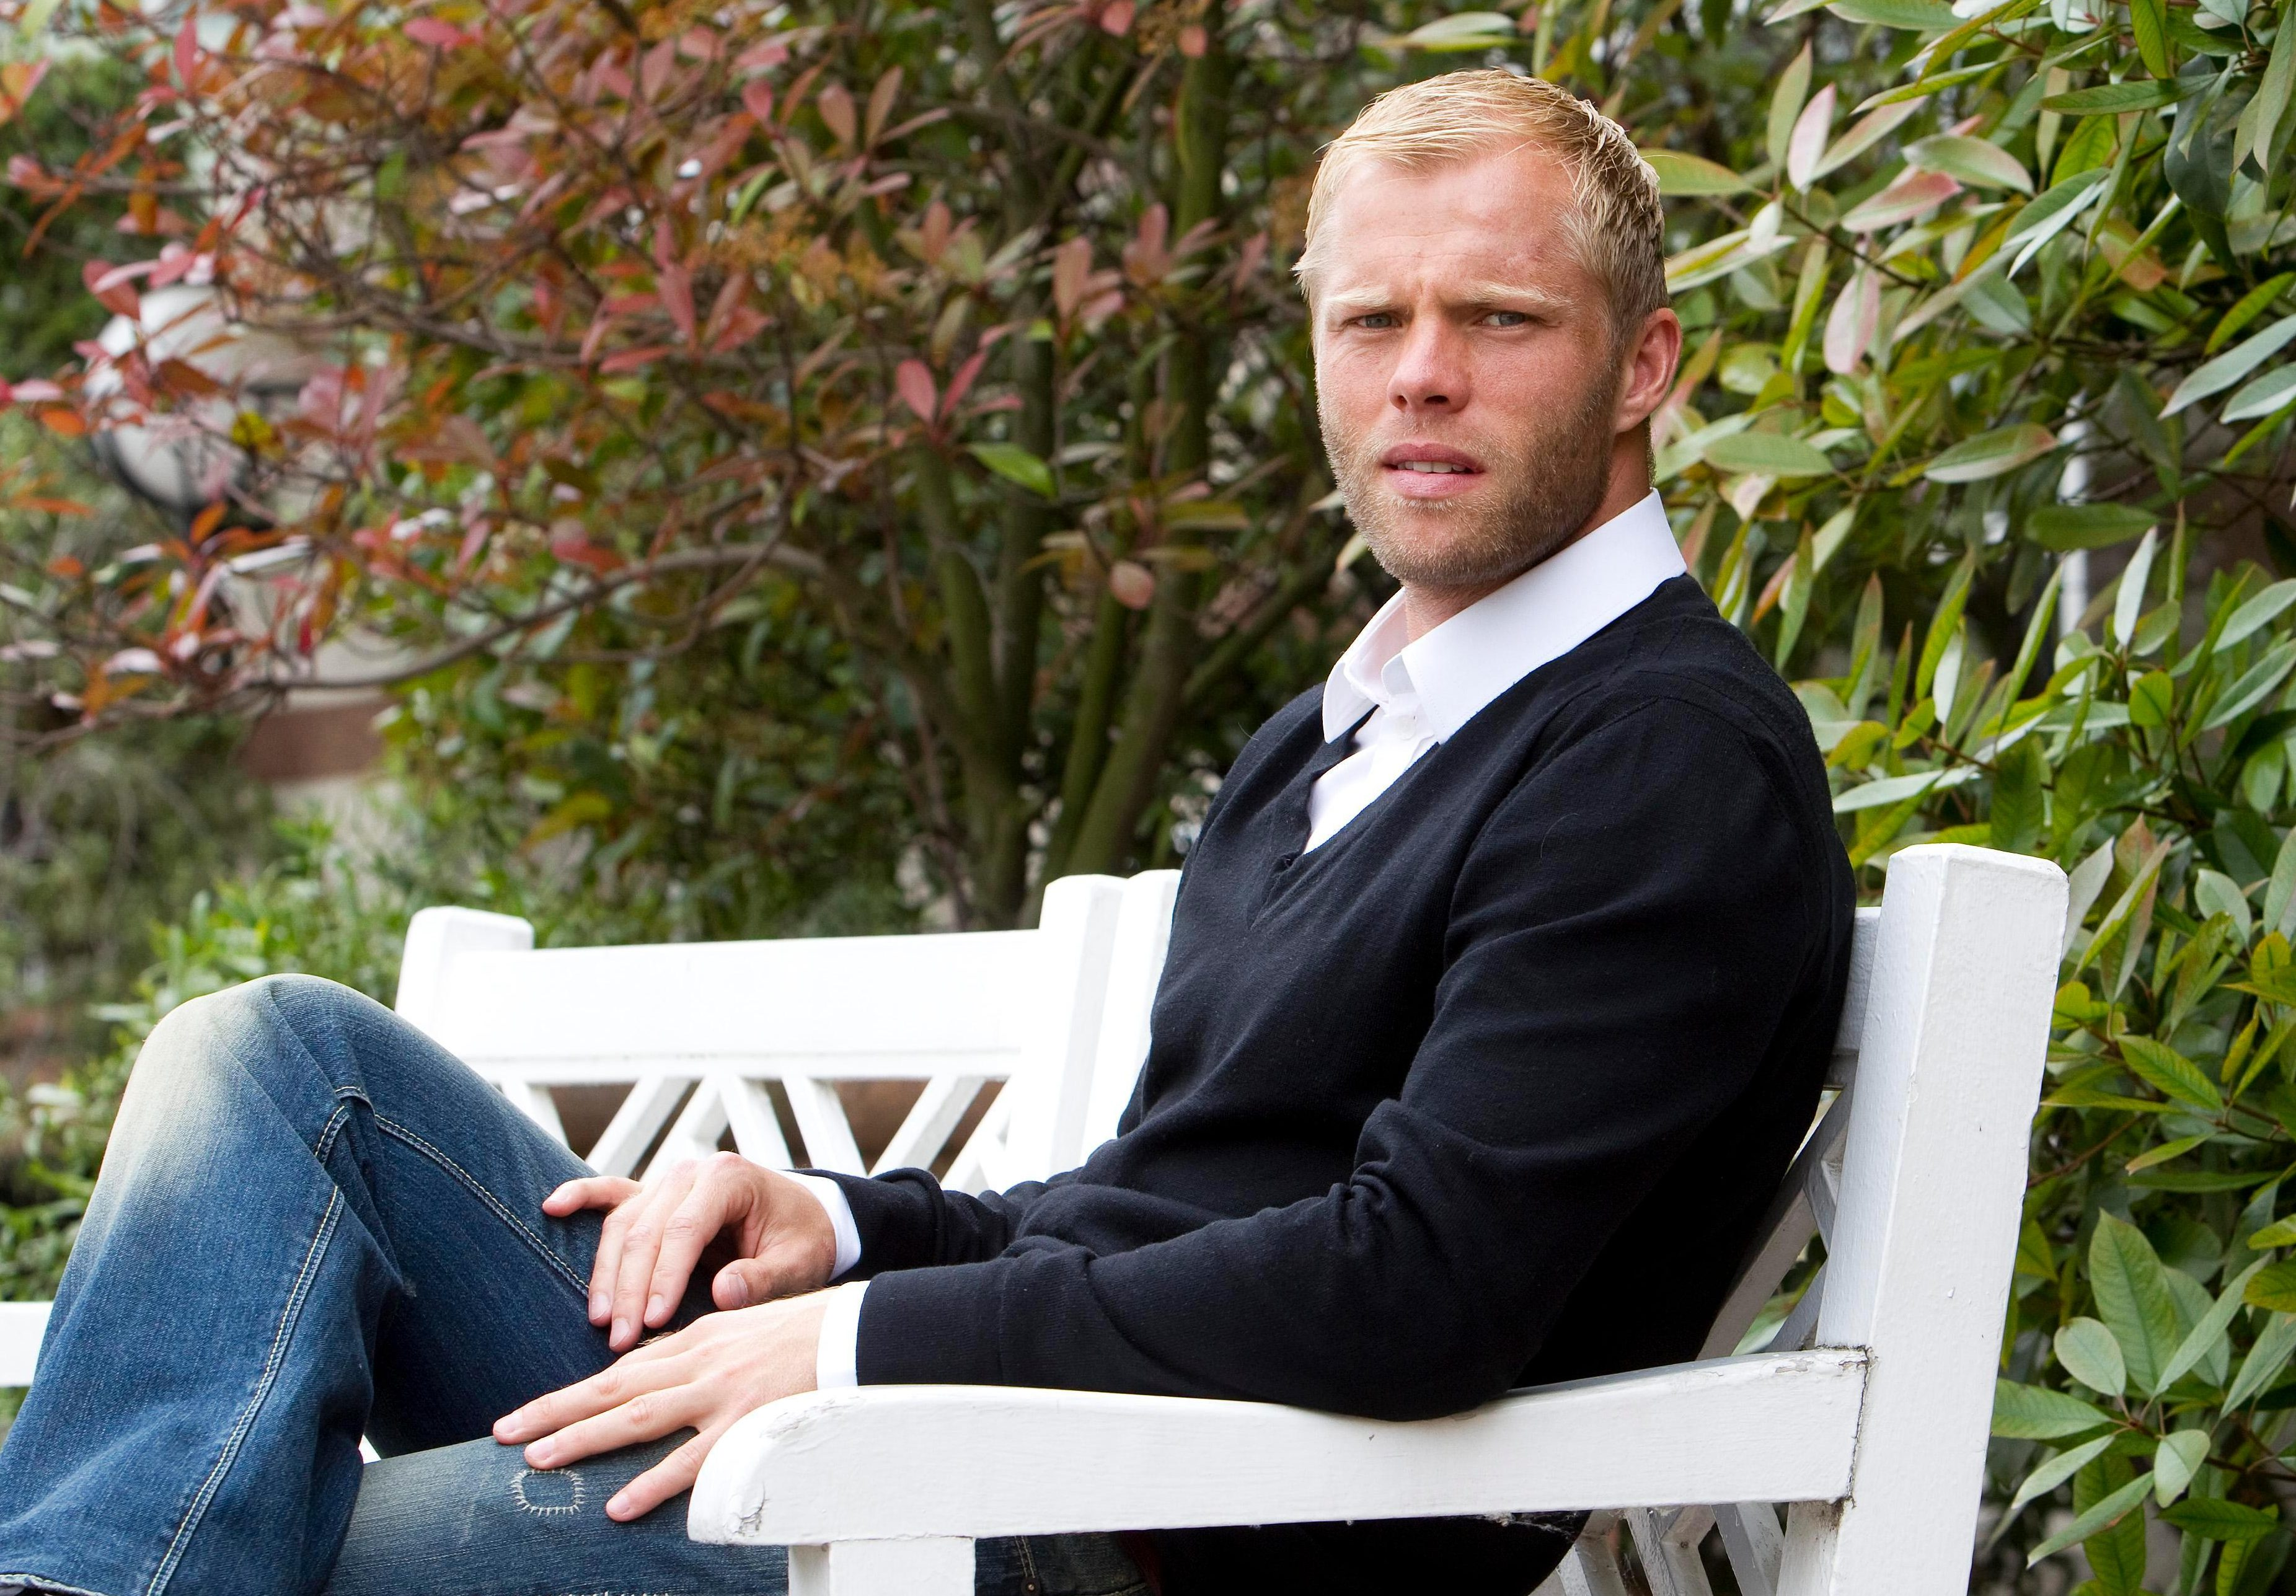 Eidur Gudjohnsen is now trying to guide his three sons as they try to make a career in football